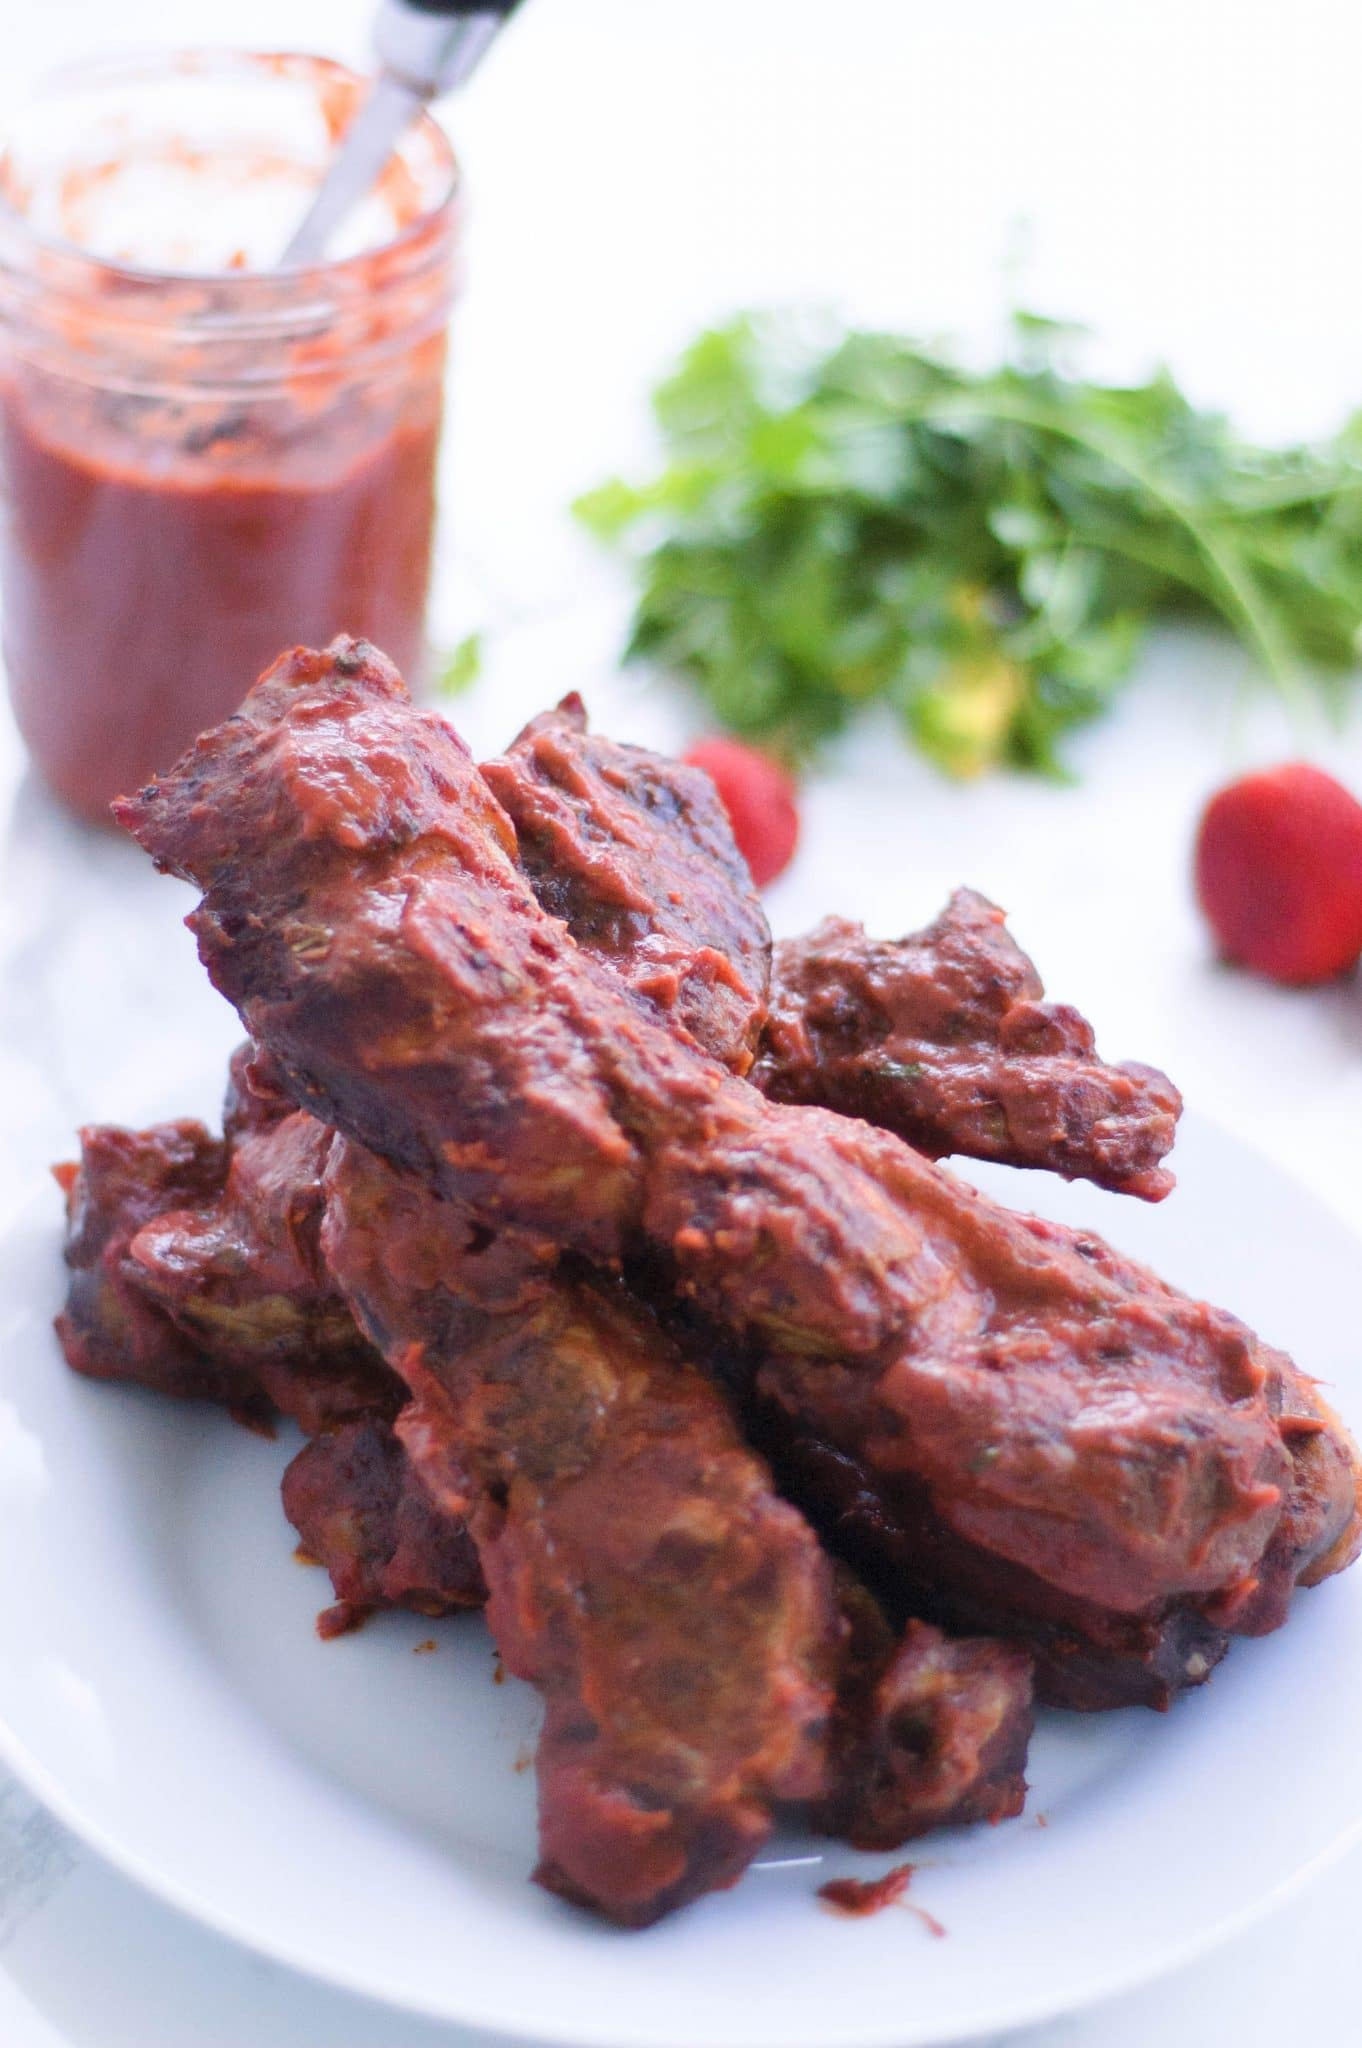 This recipe for Strawberry-Chipotle BBQ Spare Ribs is sure to tantalize your taste buds and get you out of your barbecue rut. It's perfectly sweet & spicy.